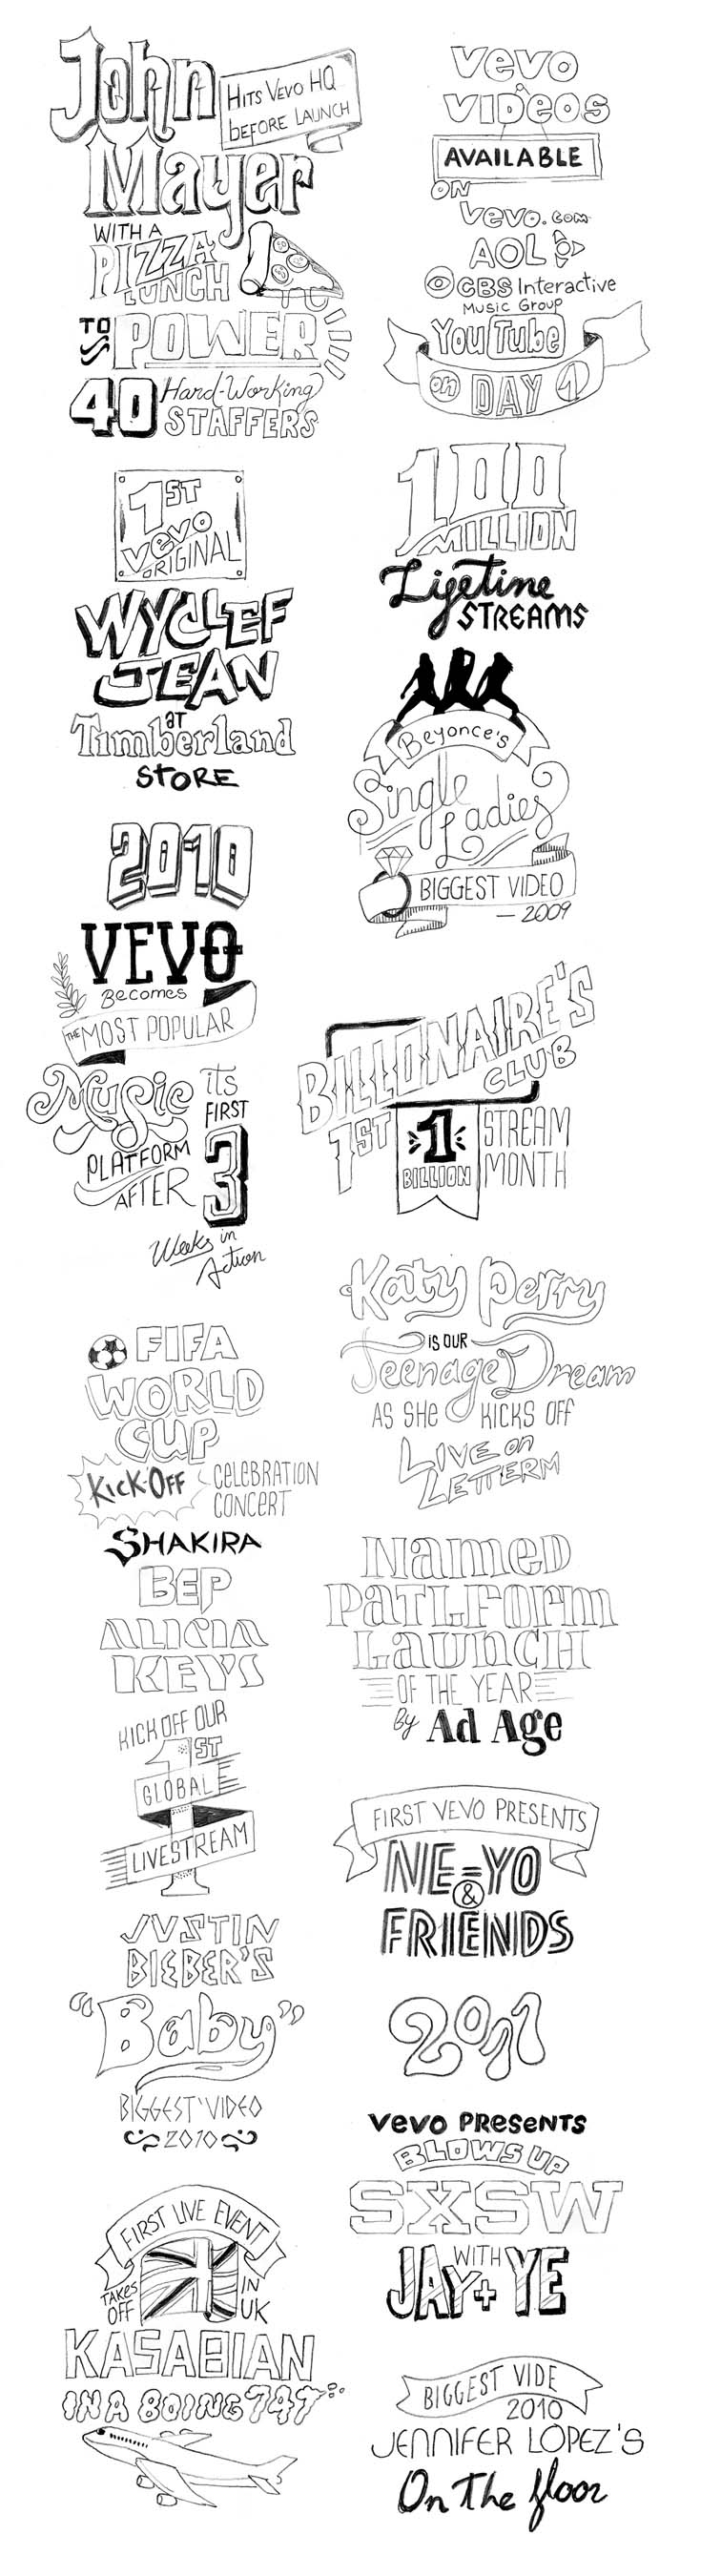 Vevo Fifth Anniversary Infographic 7005